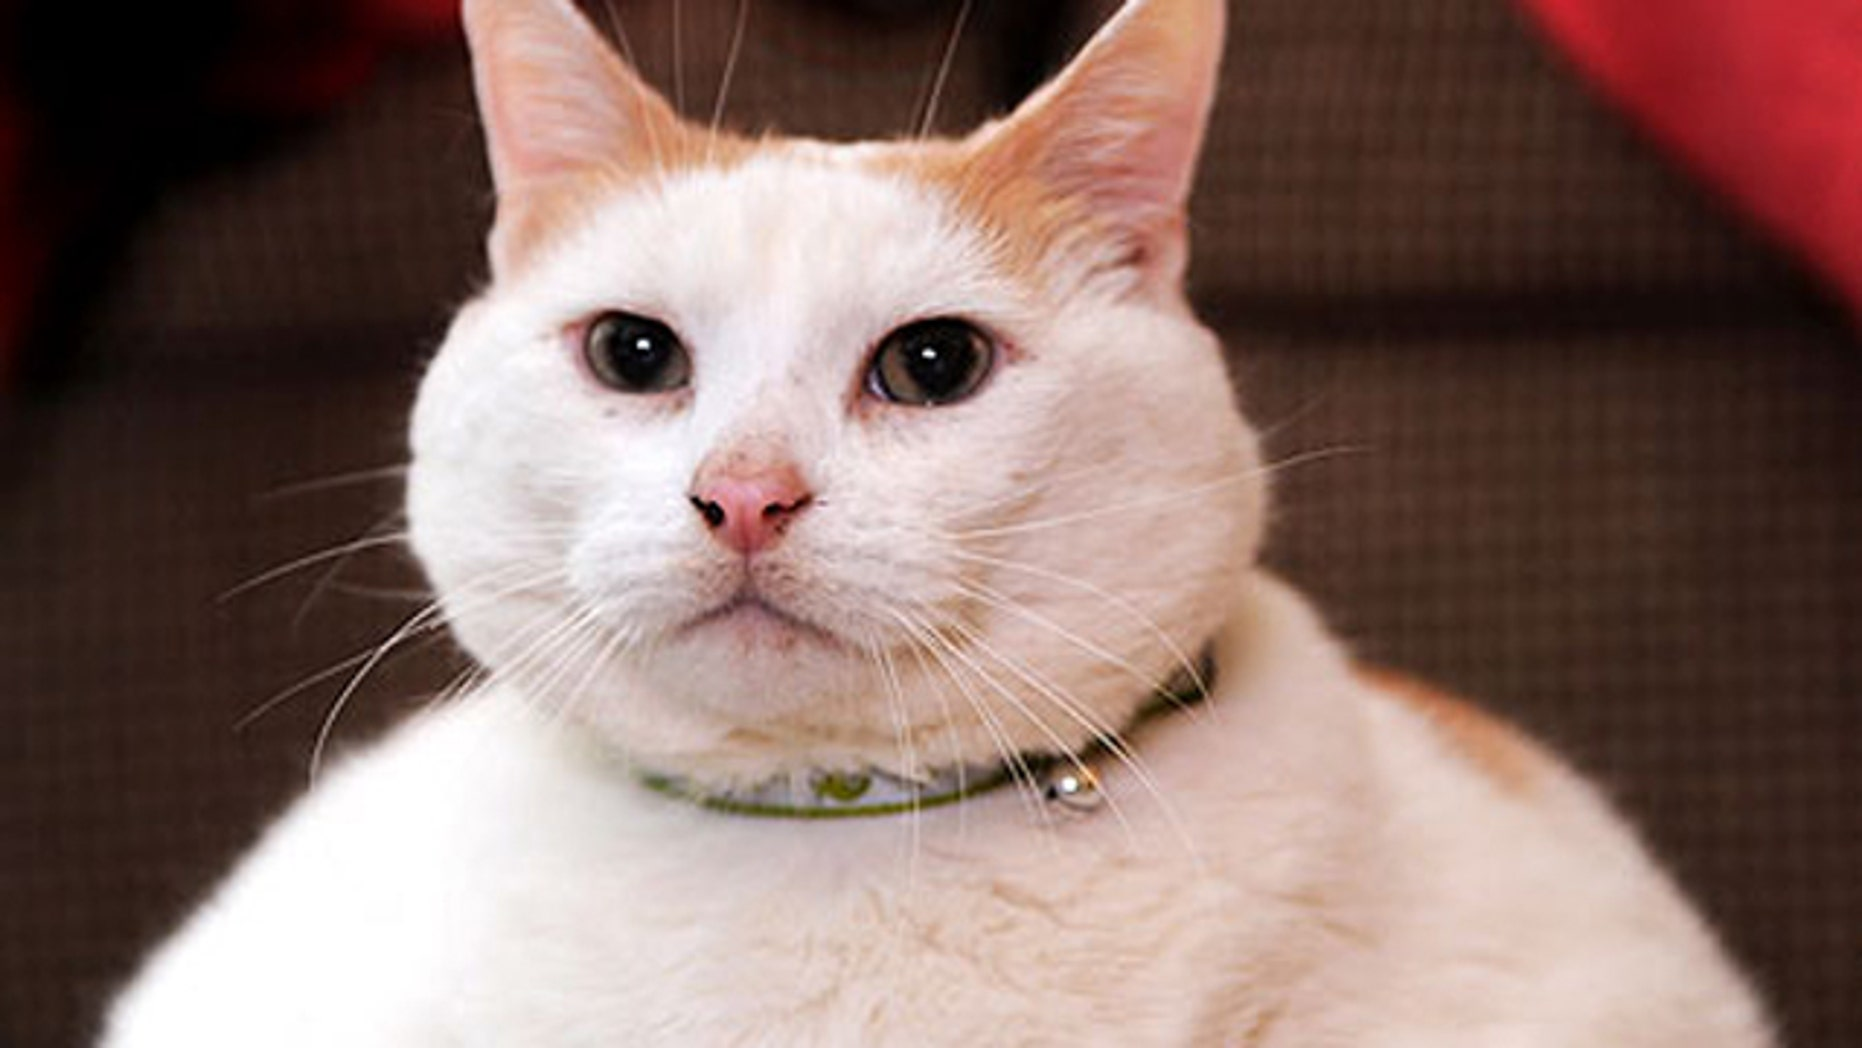 The fat cat named 'Prince Chunk' weighed in at a whopping 44 lbs., just shy of a world record.